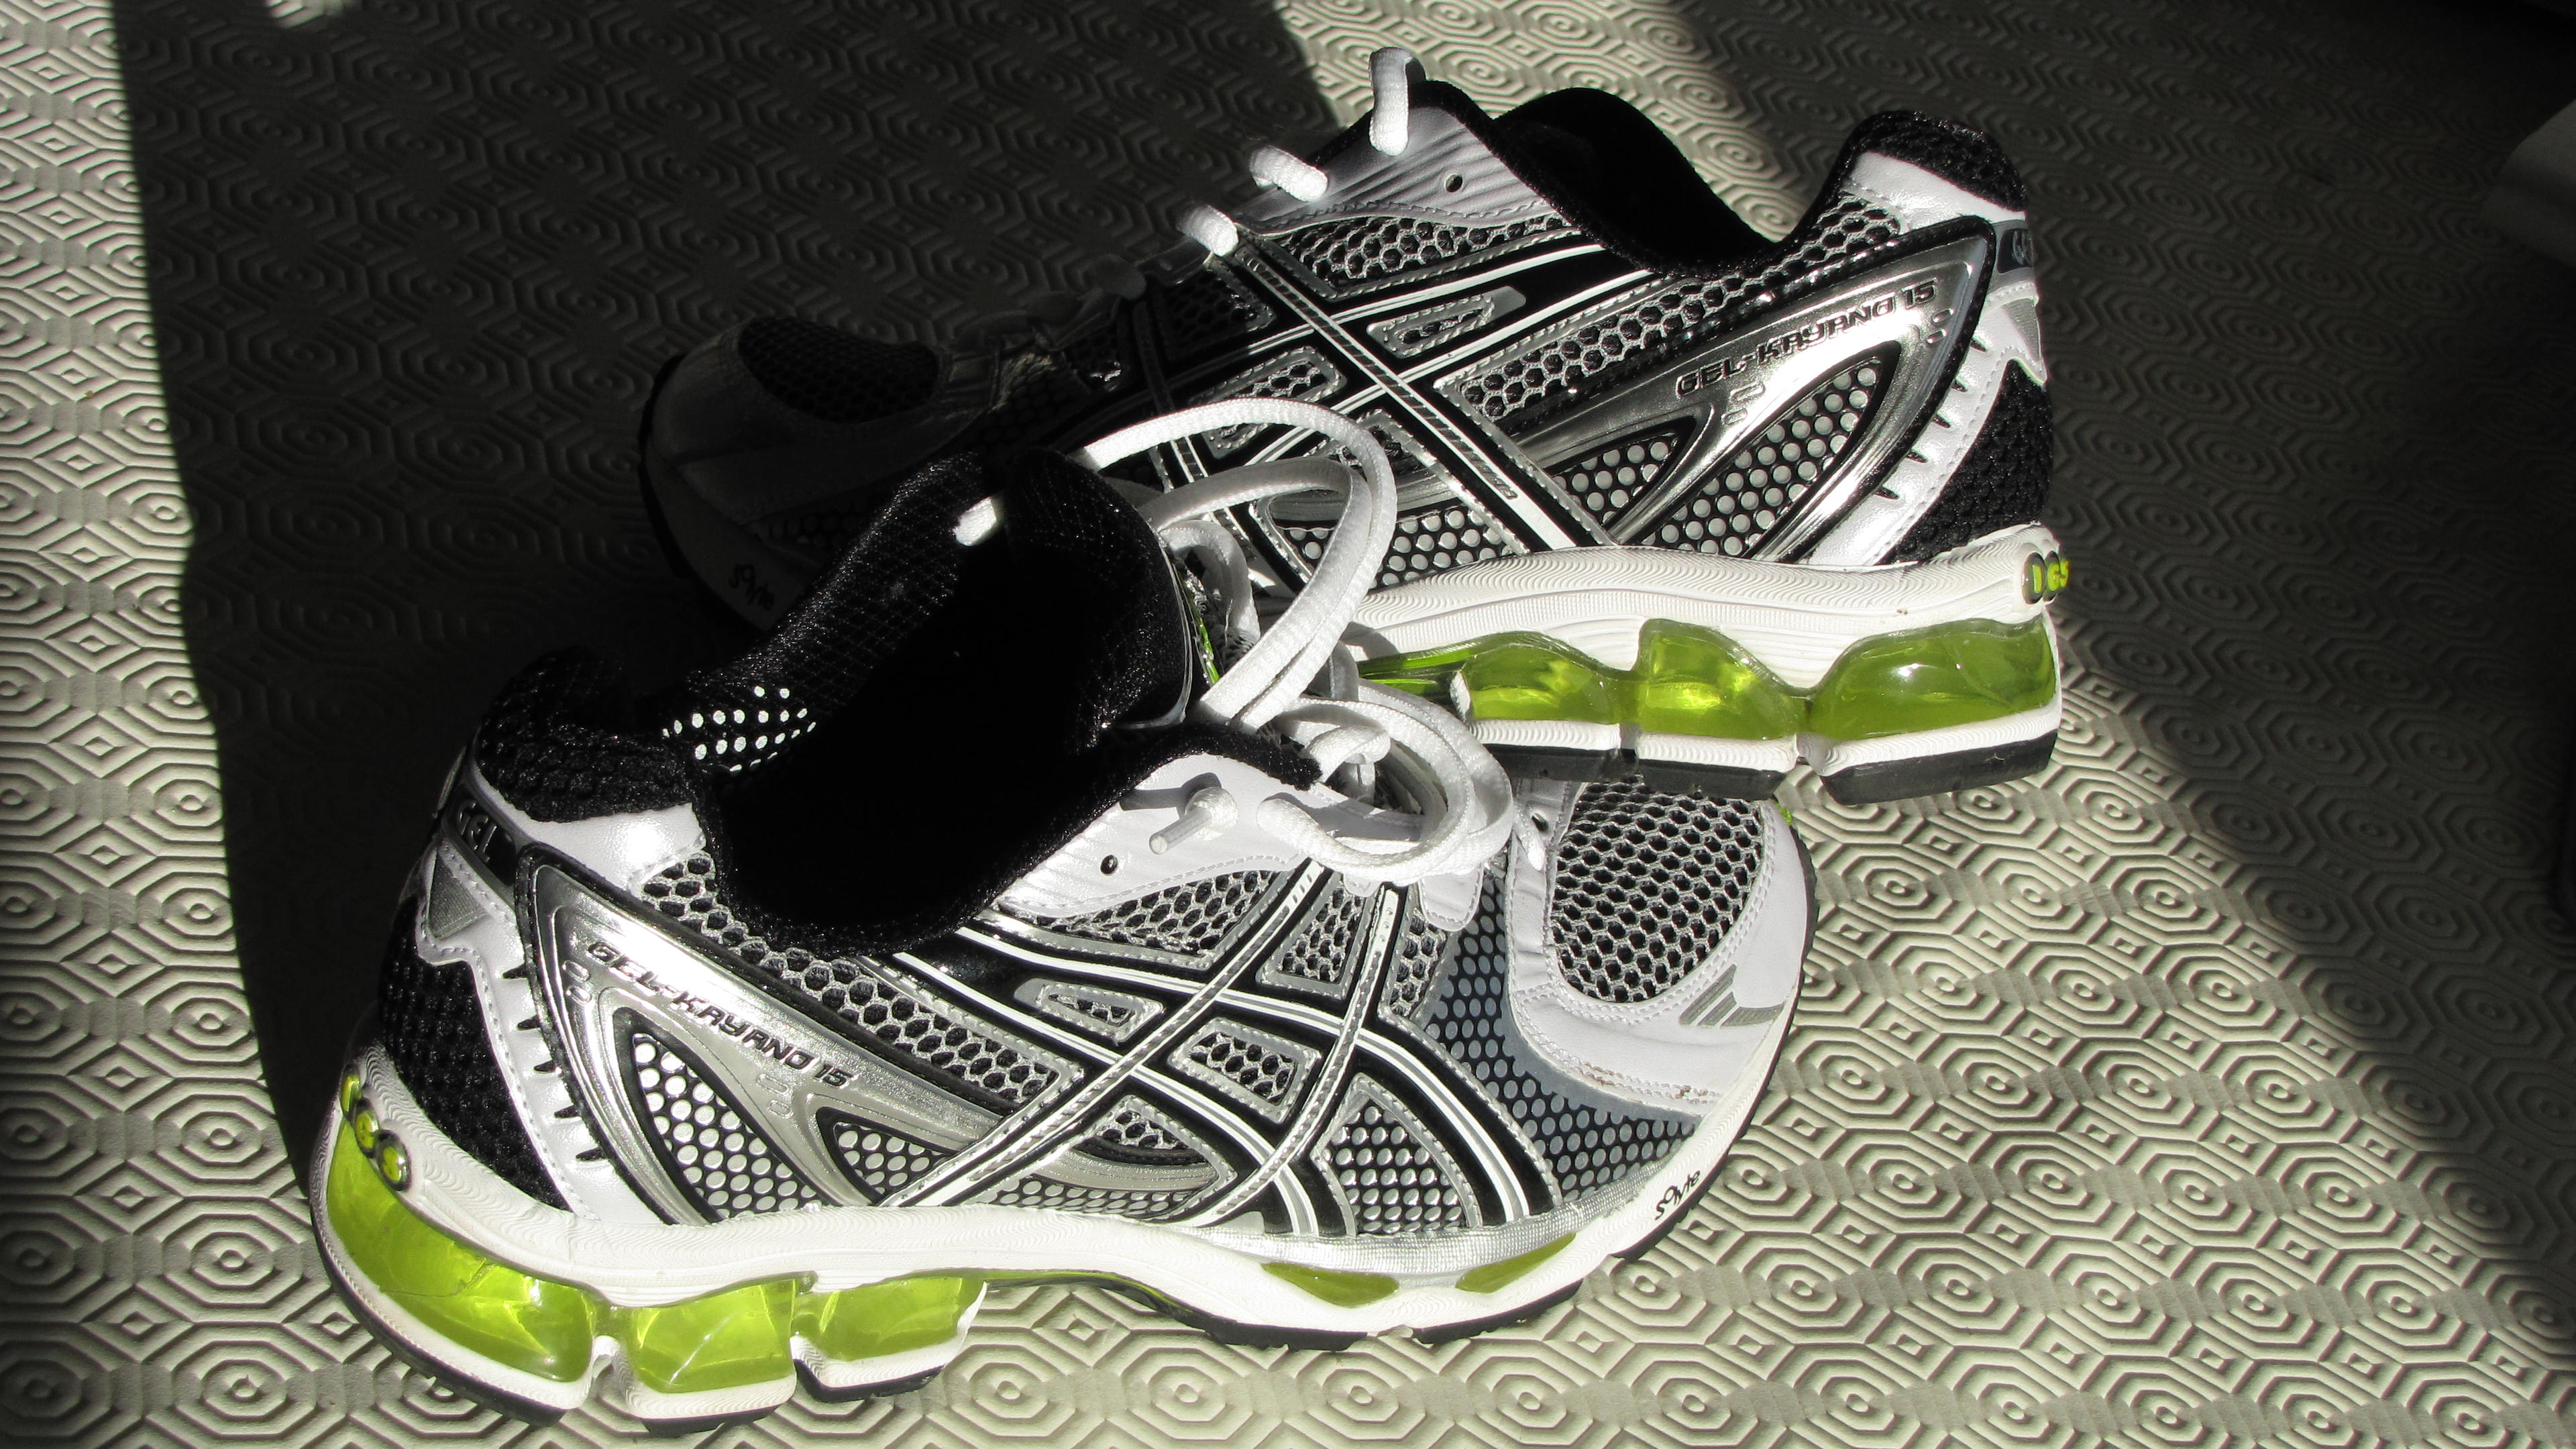 File:Asics Gel Kayano 15 I.jpg